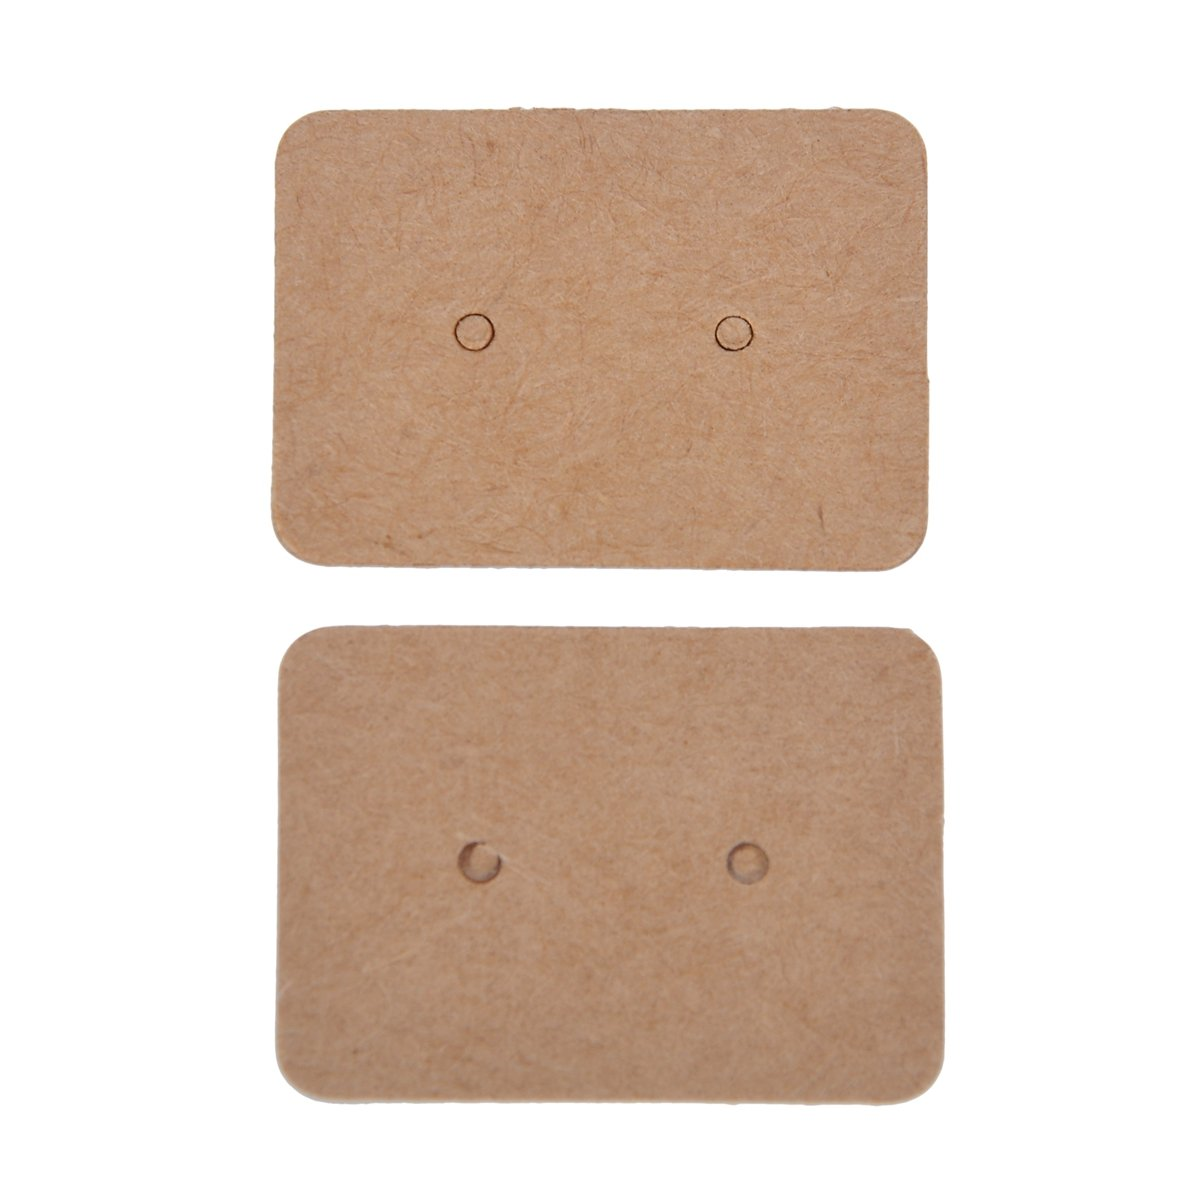 HooAMI 100PCS Brown Plain Earring Jewellery Display Cards35mmx25mm Terrific-Young BETY133492